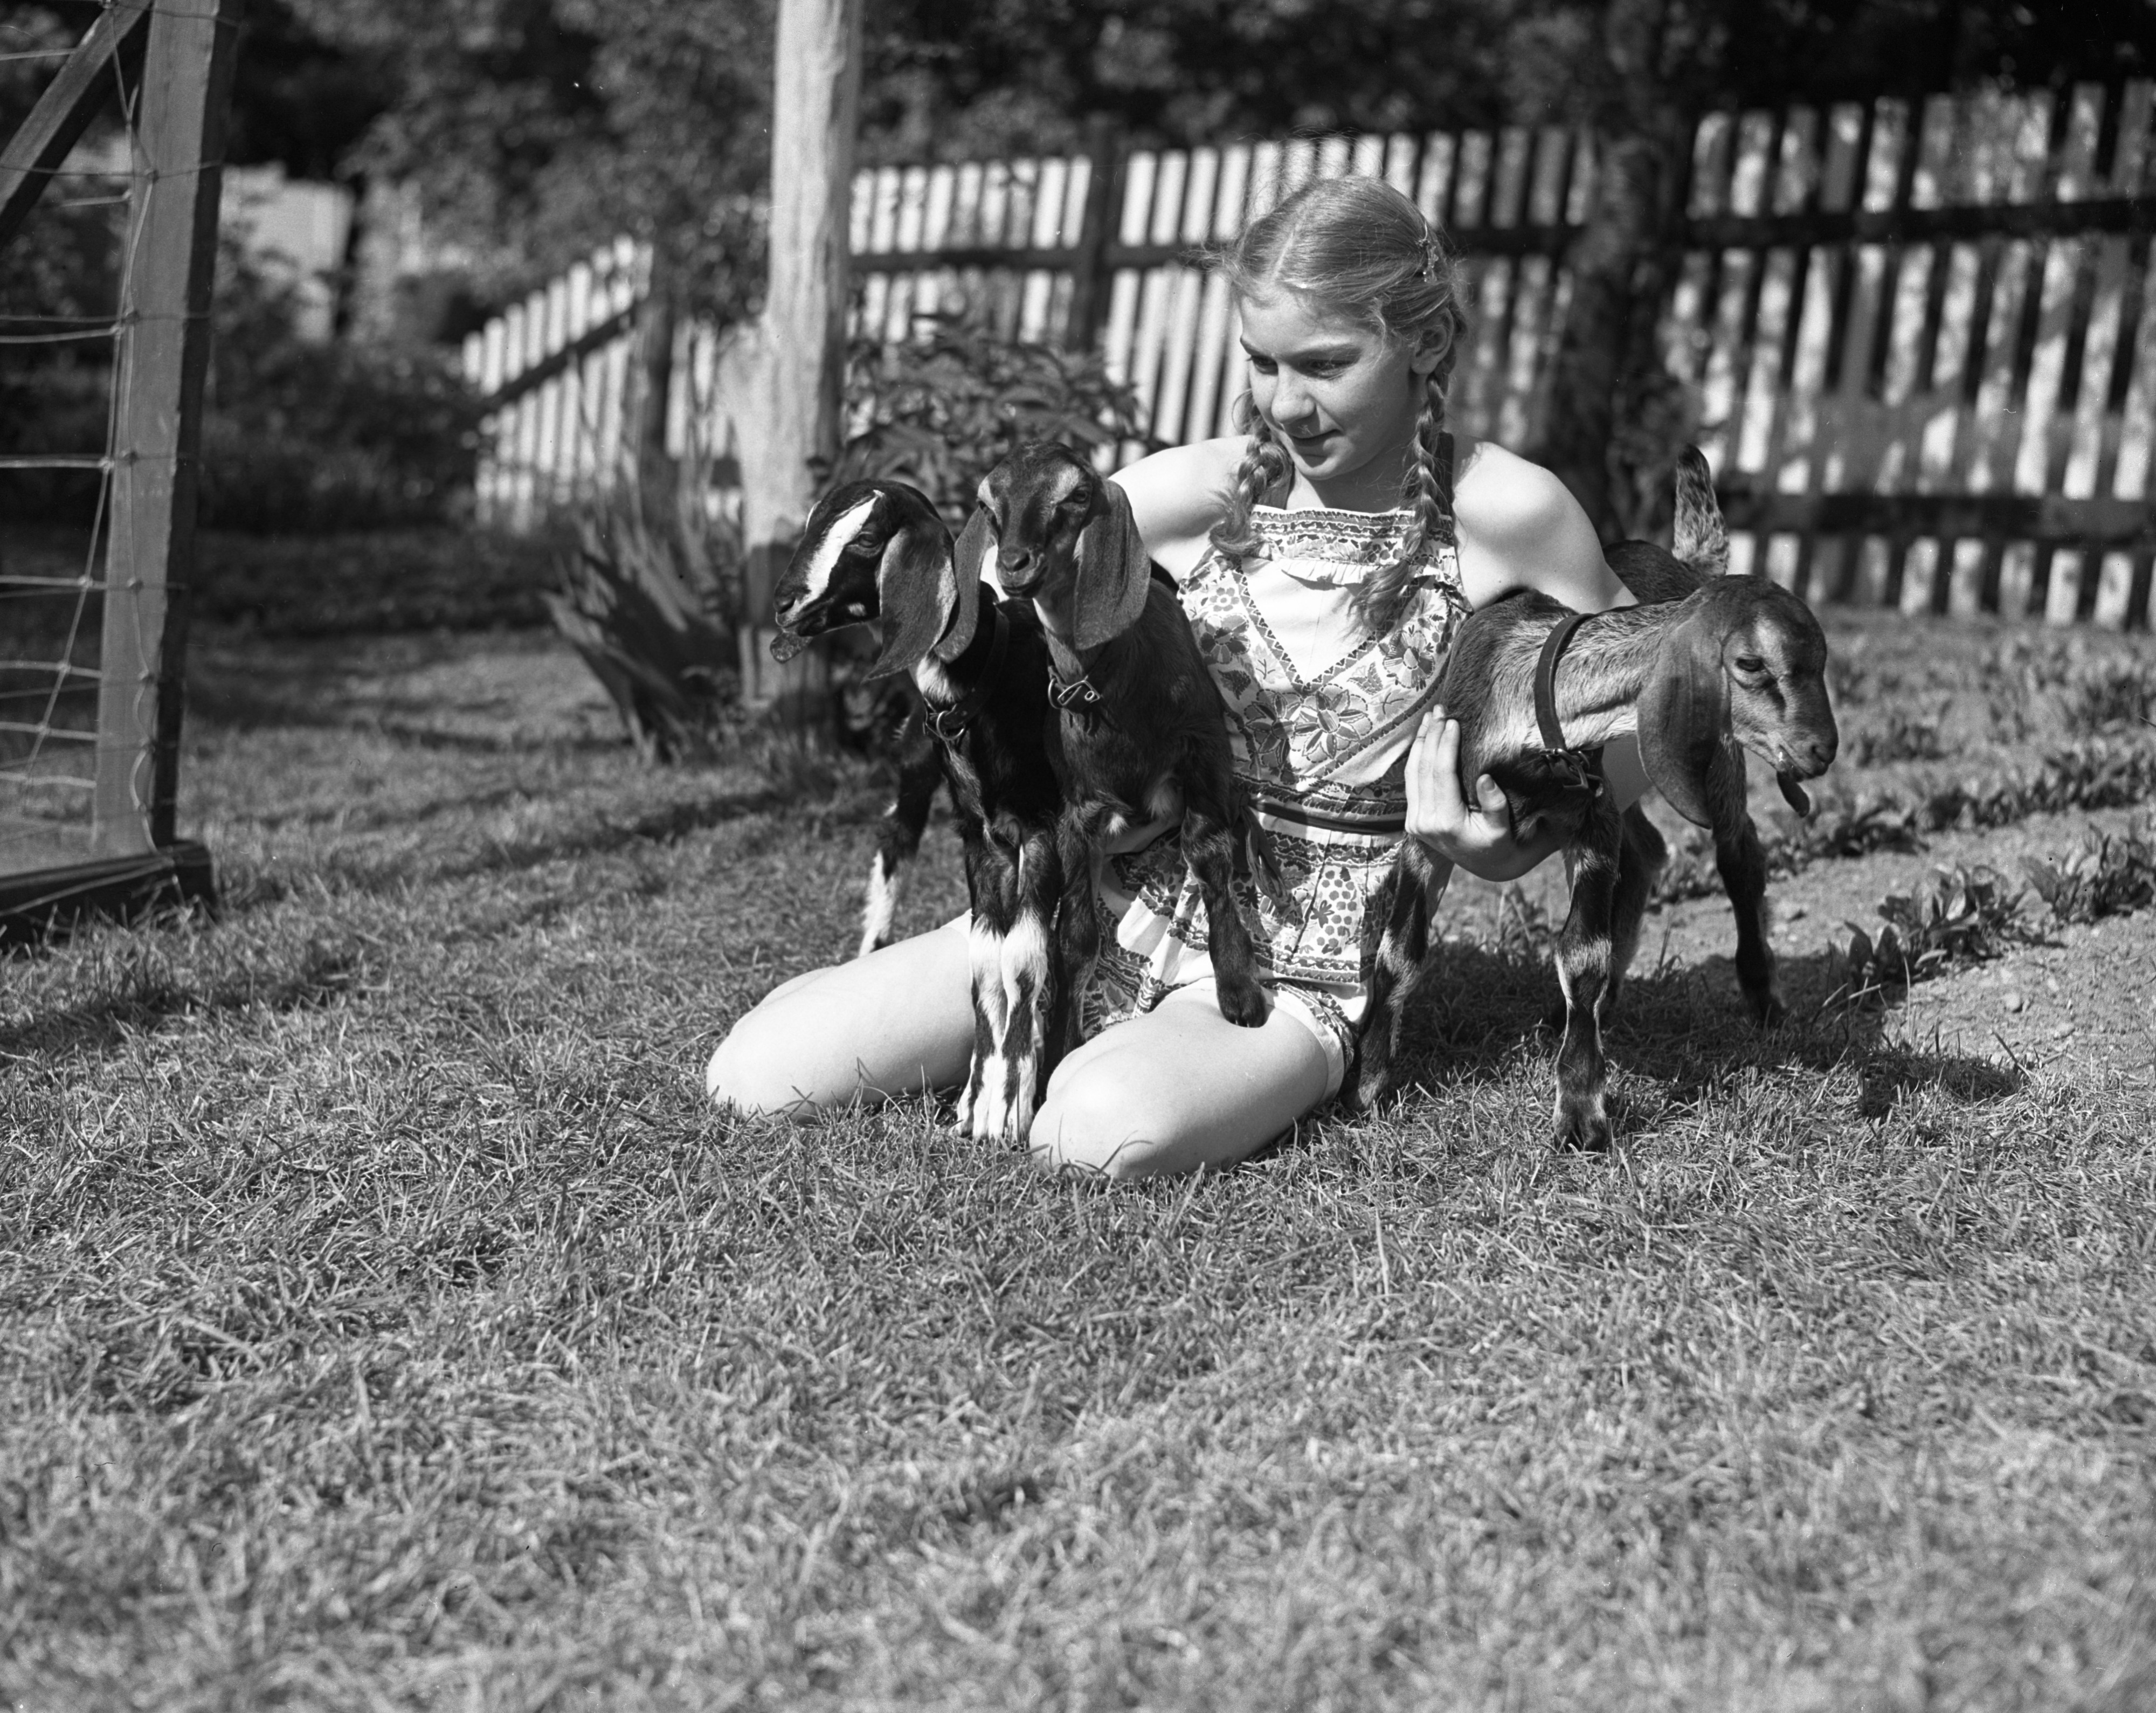 Karlen Gretchen Lutz of 544 N Division, with her family's triplet goats, June 1940 image